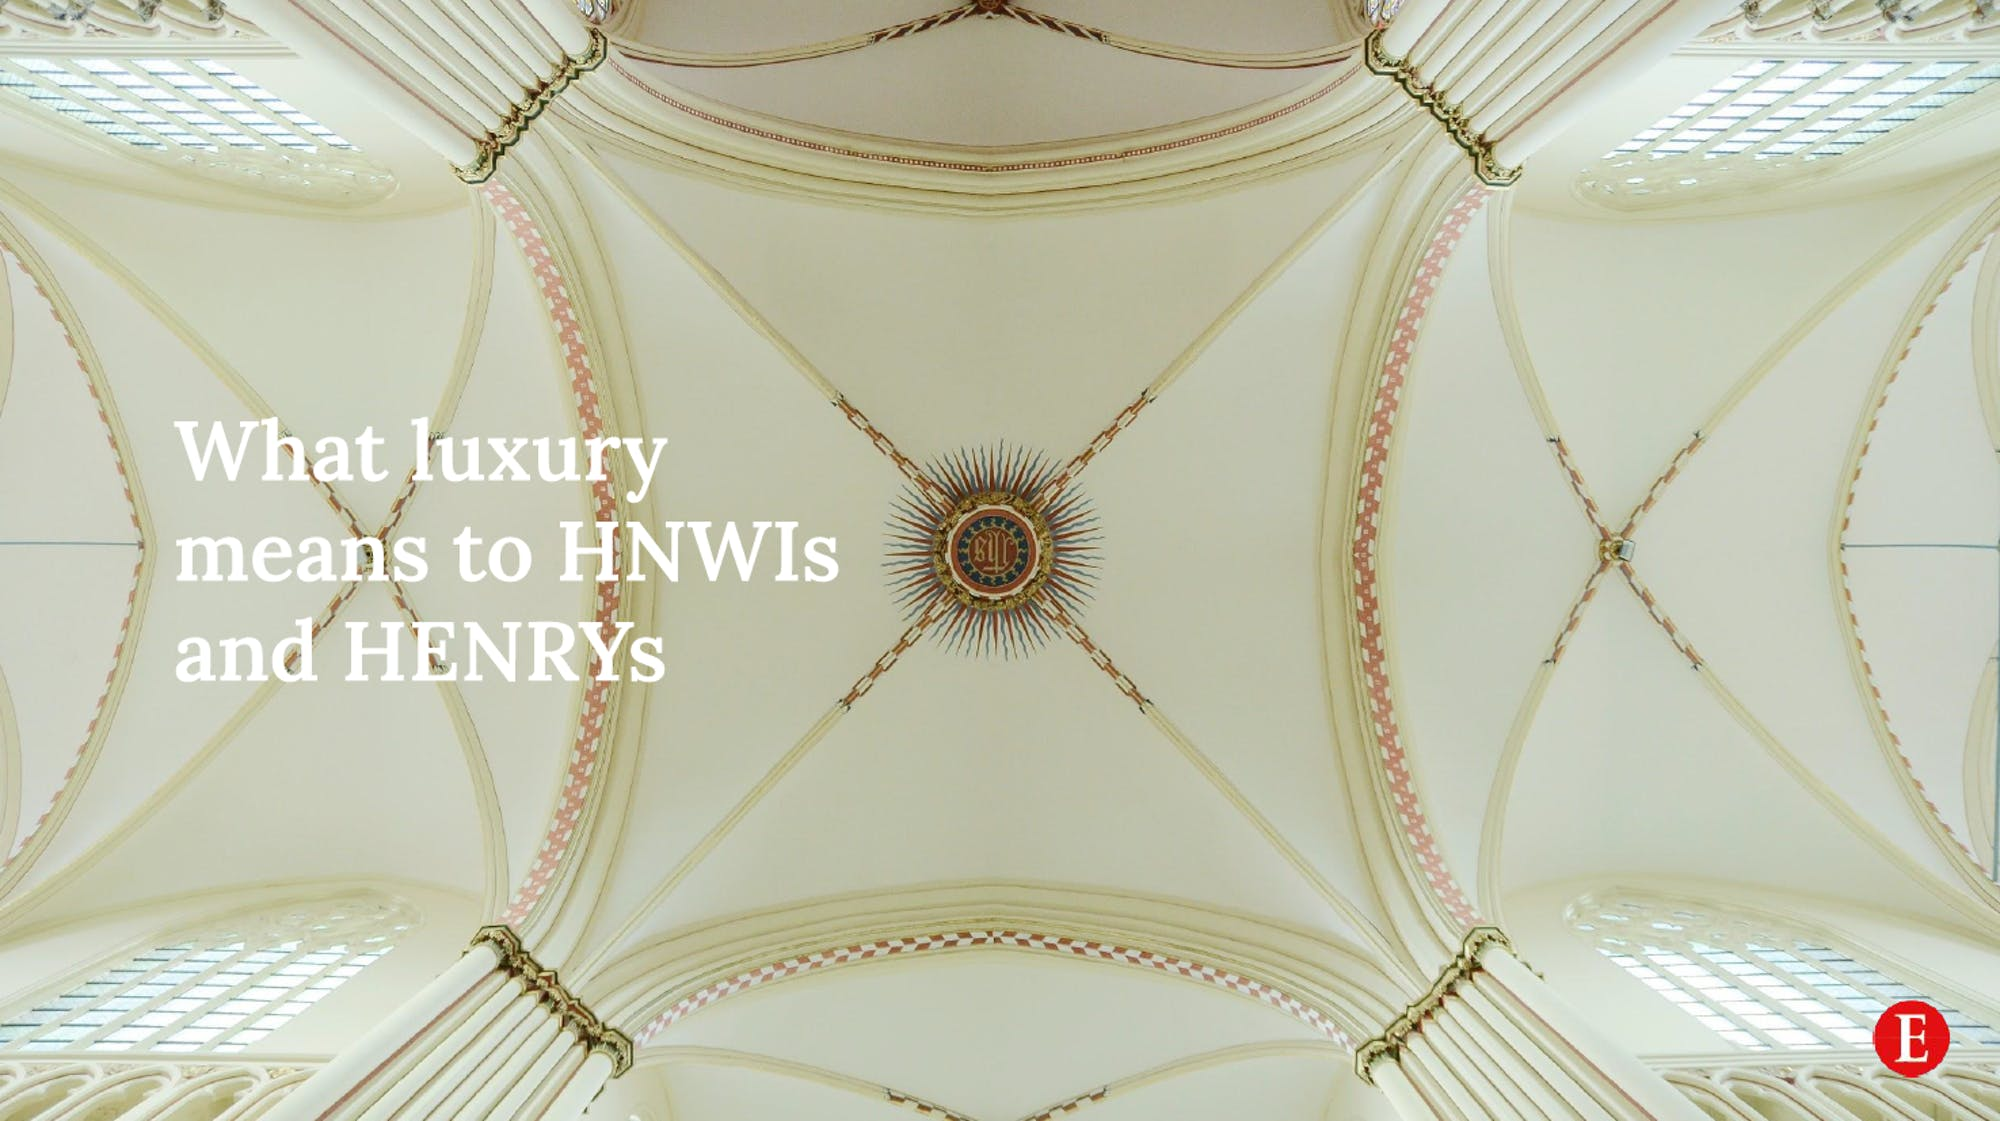 Walpole x The Economist Insight Are HENRYs taking a new approach to luxury? Is Covid-19 changing attitudes?